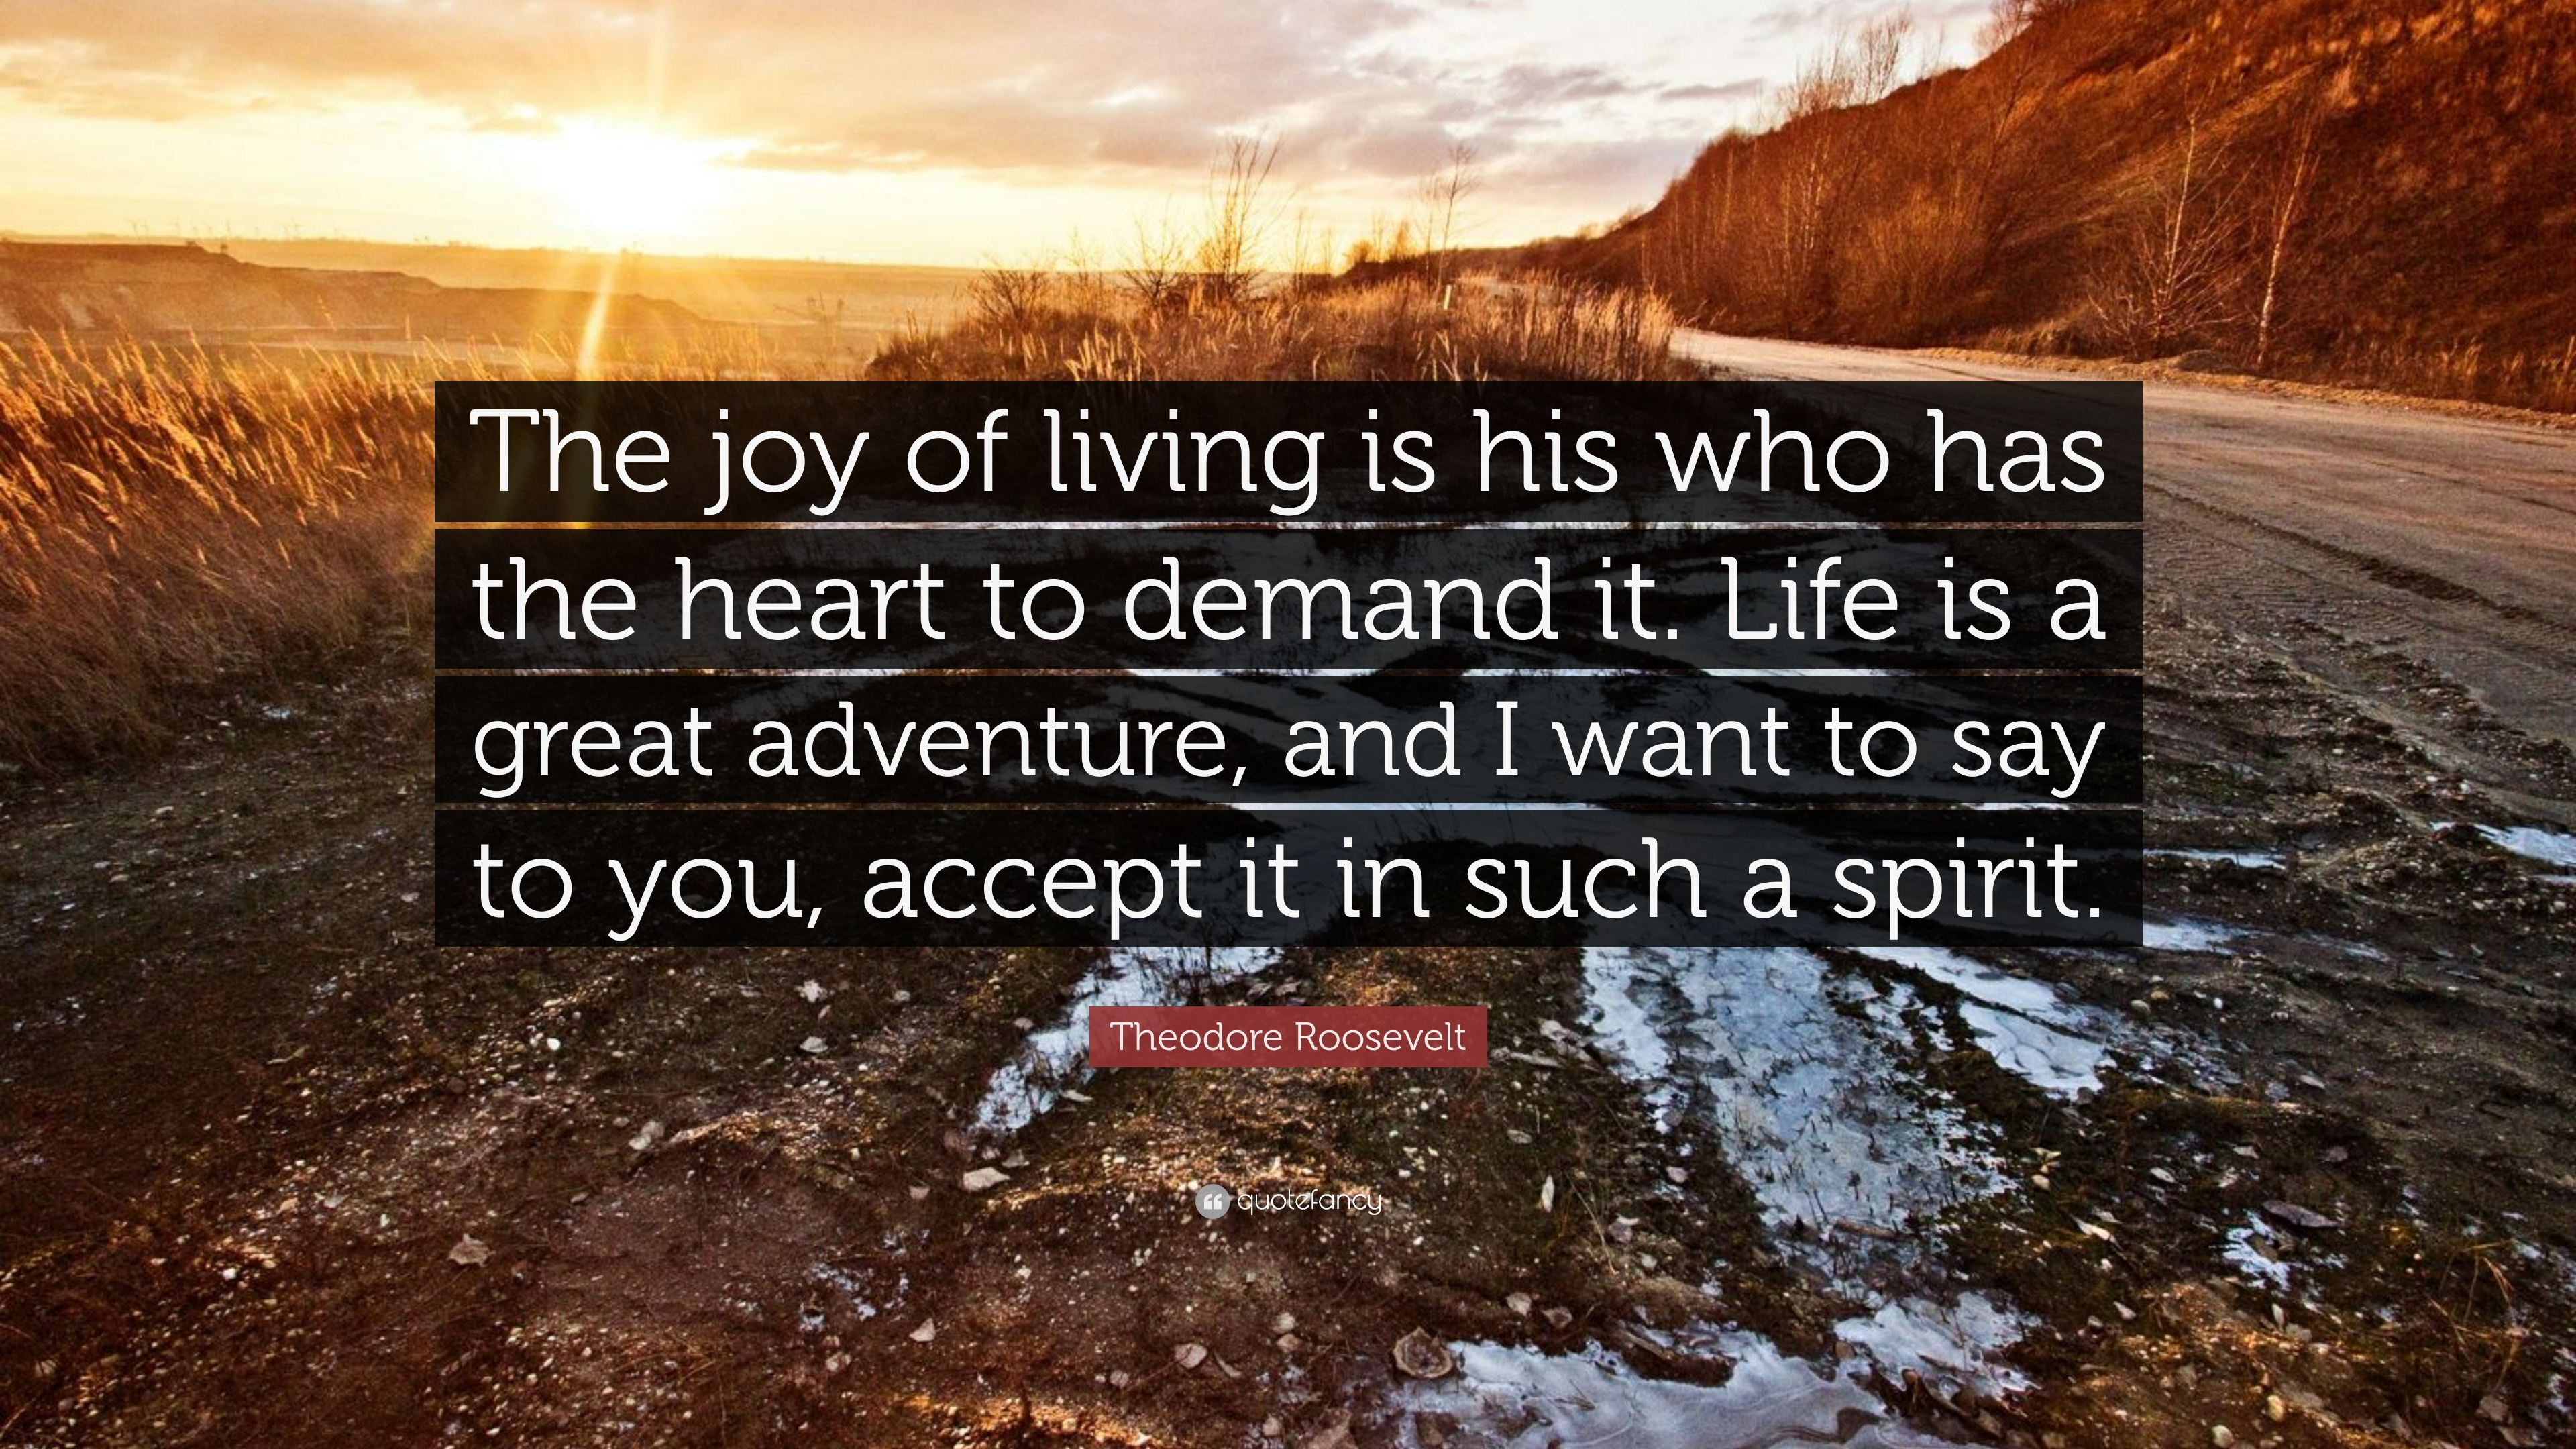 Theodore Roosevelt Quote: U201cThe Joy Of Living Is His Who Has The Heart To